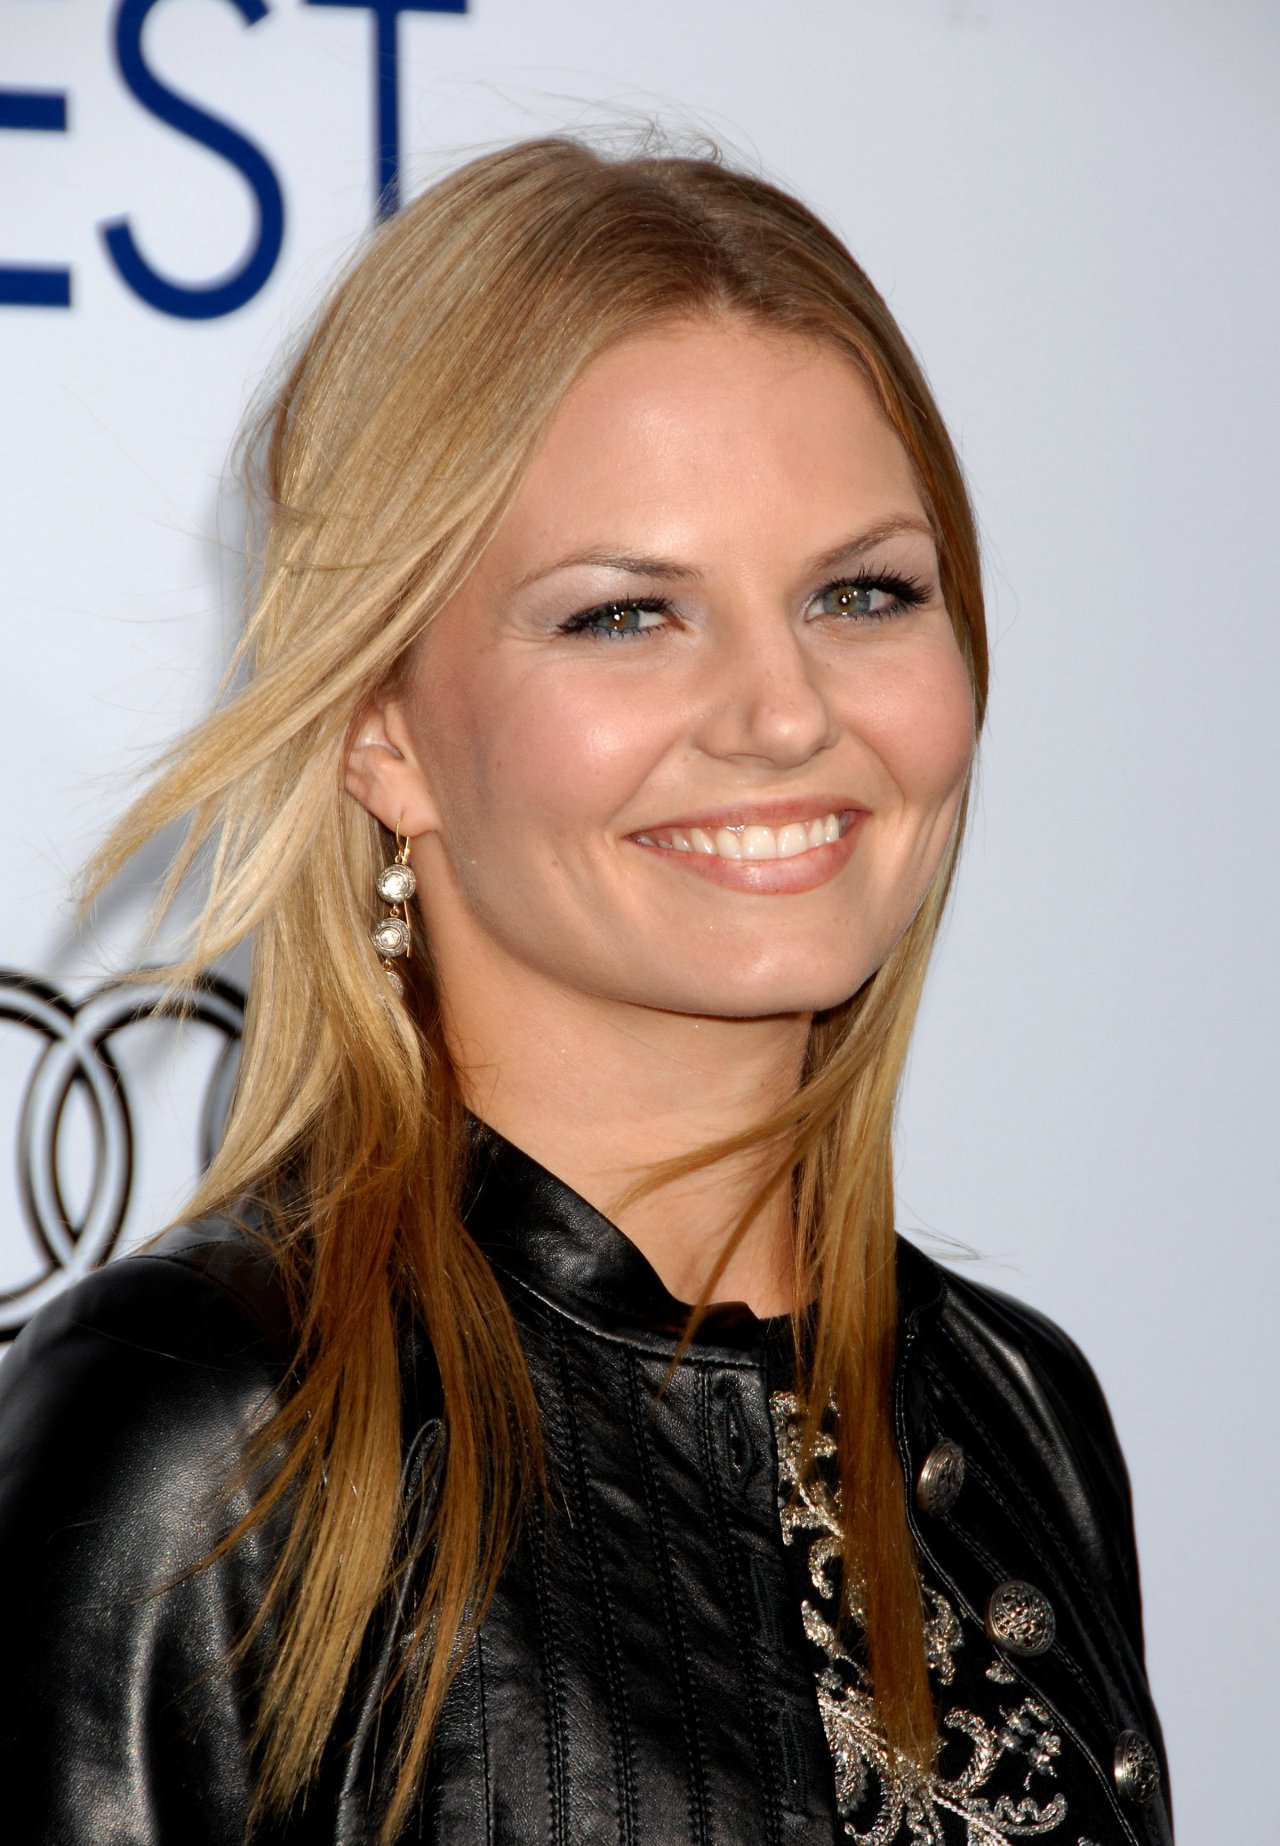 Photo Jennifer Morrison - Wallpapers with a celebrity ...: http://ua-dreams.com/celebrity/jennifer-morrison/fugp.html